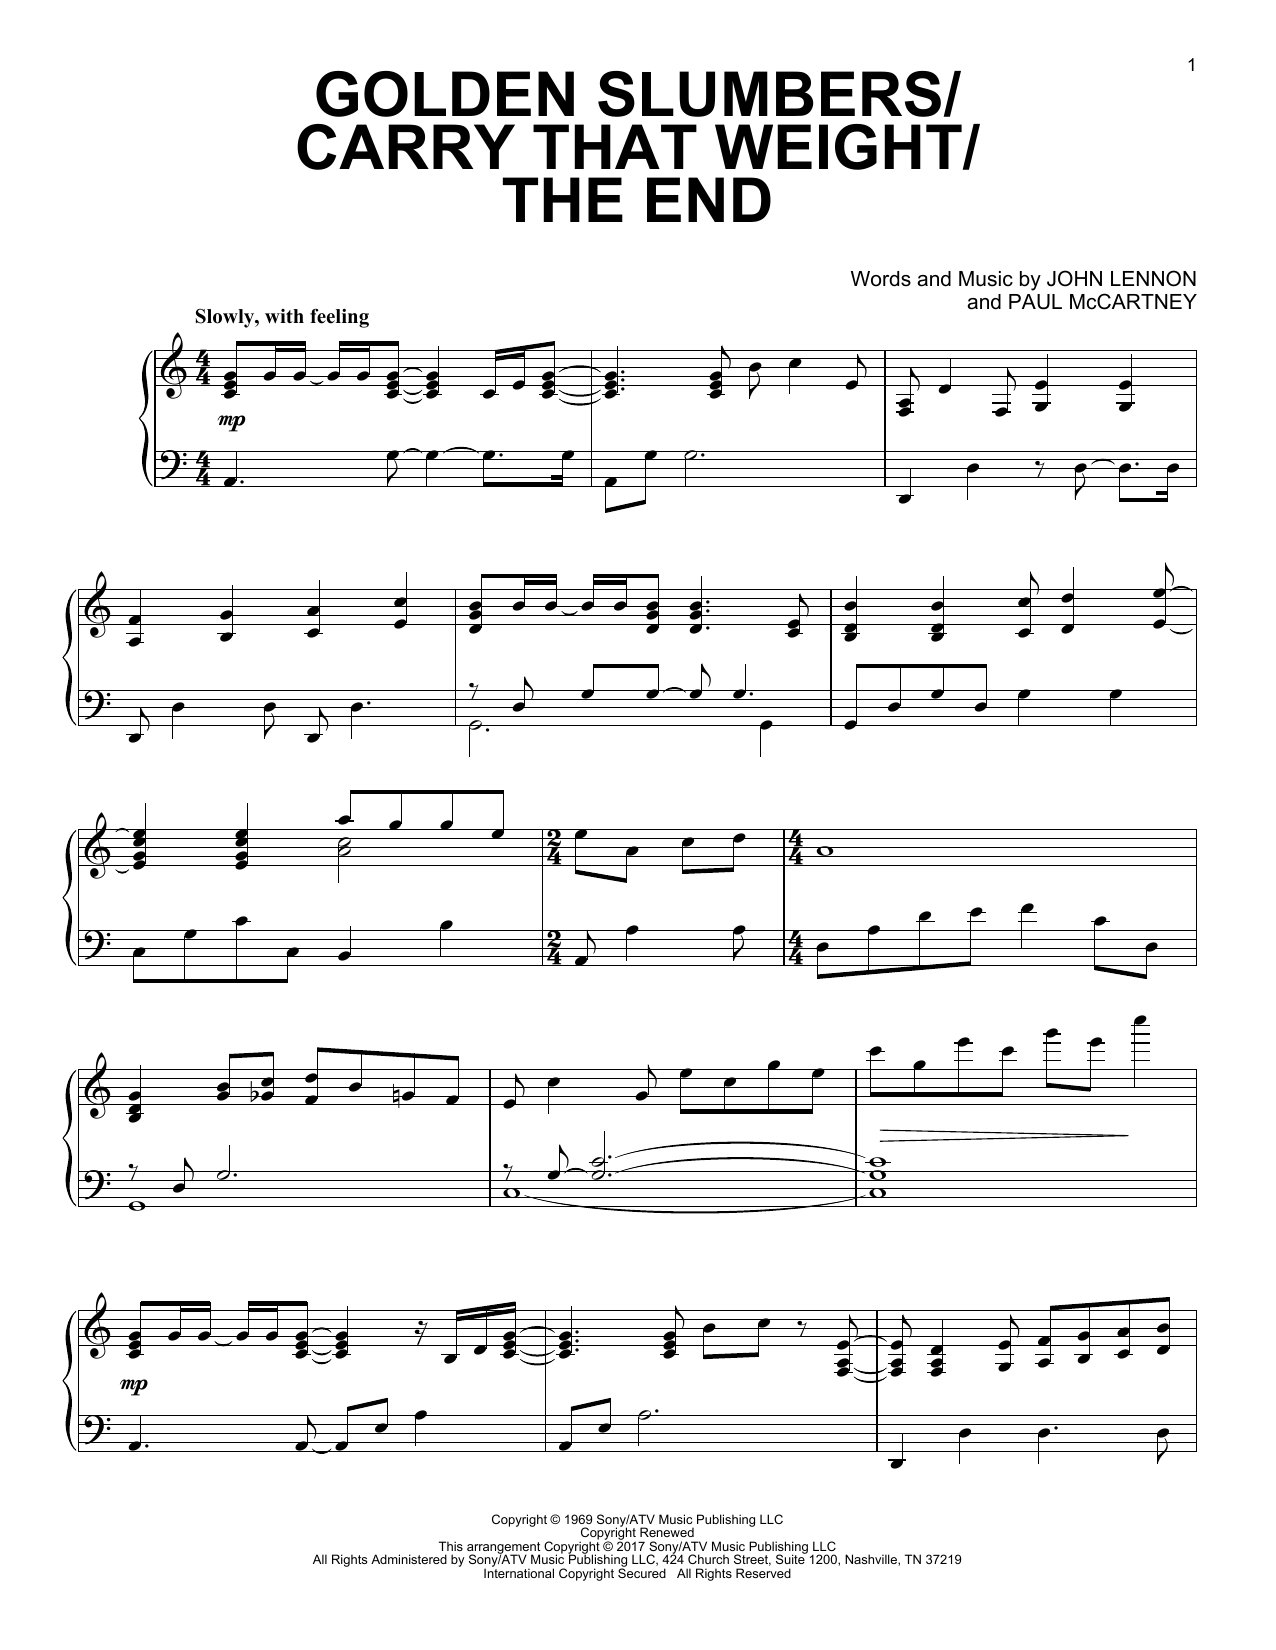 Download Paul McCartney 'Golden Slumbers/Carry That Weight/The End' Digital Sheet Music Notes & Chords and start playing in minutes